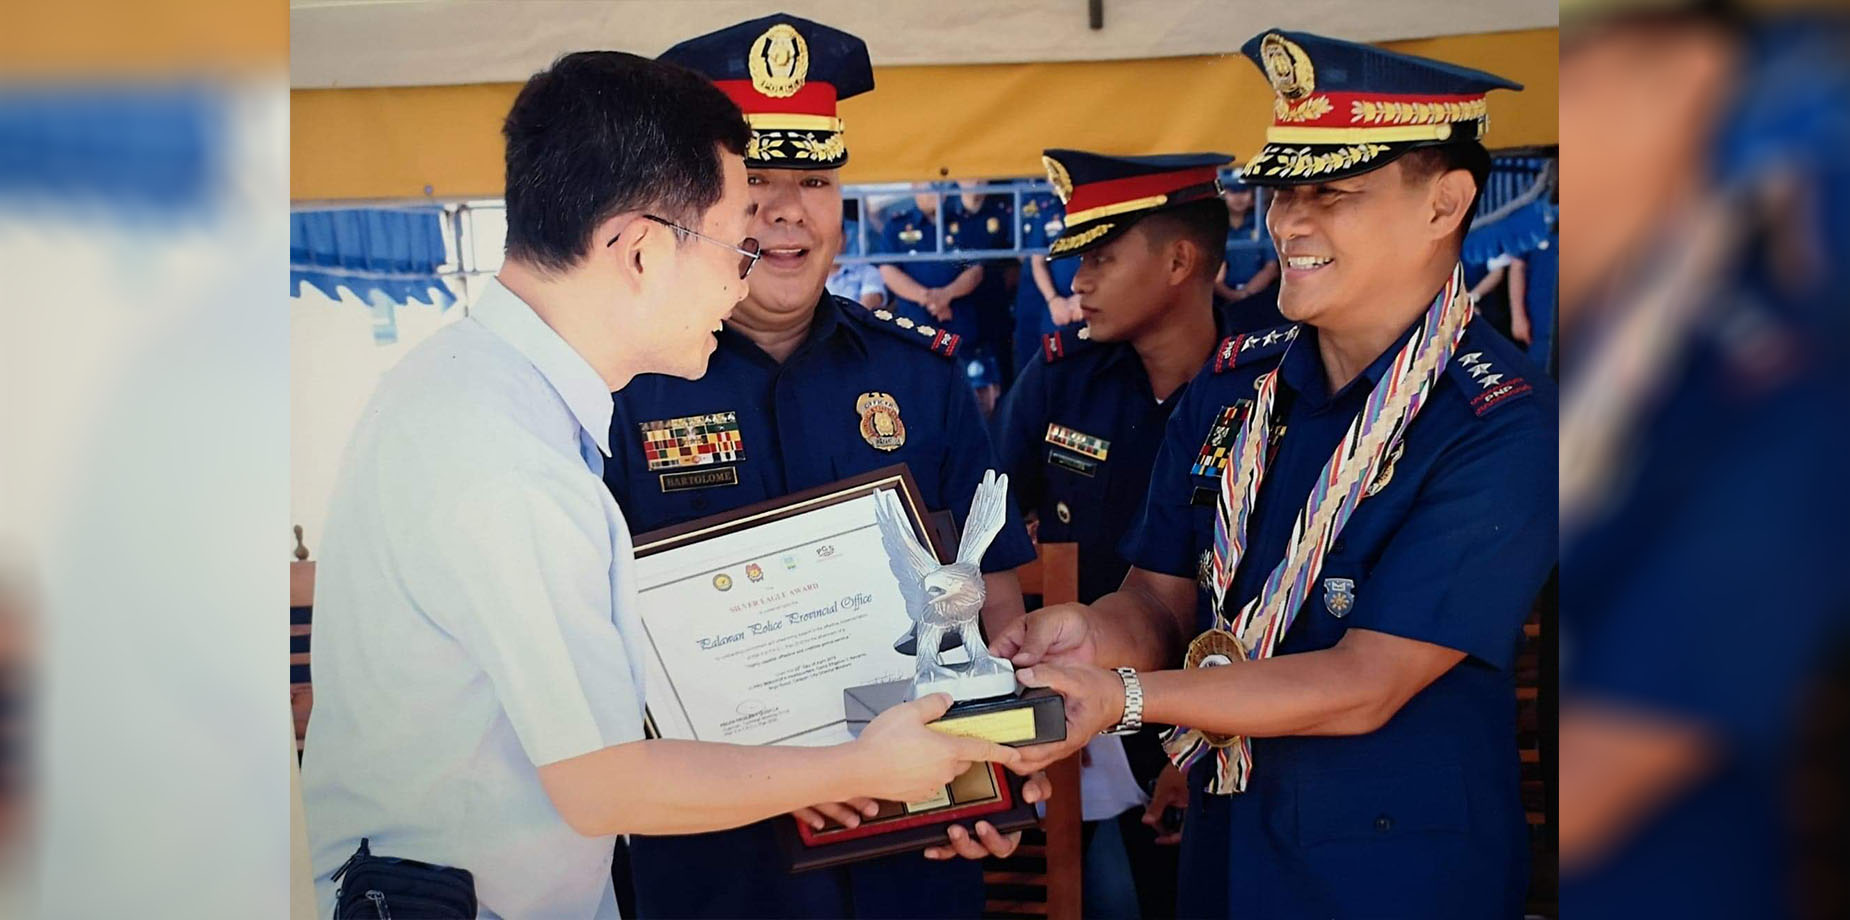 The Philippine National Police - Performance Governance System (PNP-PGS) Conferment and Awarding Ceremony of the Police Regional Office (RPO) - Mimaropa held in Calapan City. In photo: Dr. Jesus Ong (extreme left), chaiman, Palawan Provincial Police Office- Provincial Advisory Council (PPO-PAC), Police Colonel Dionisio Bartolome, Jr., provincial director, PPO (2nd from the left), and Police Lieutenant General Camilo Pancratius Cascolan, chief directorial staff, PNP National Headquarters (extreme right). (JO/PPO-PAC)  (Photo courtesy: Dr. Jesus Ong/Palawan PPO-PAC)